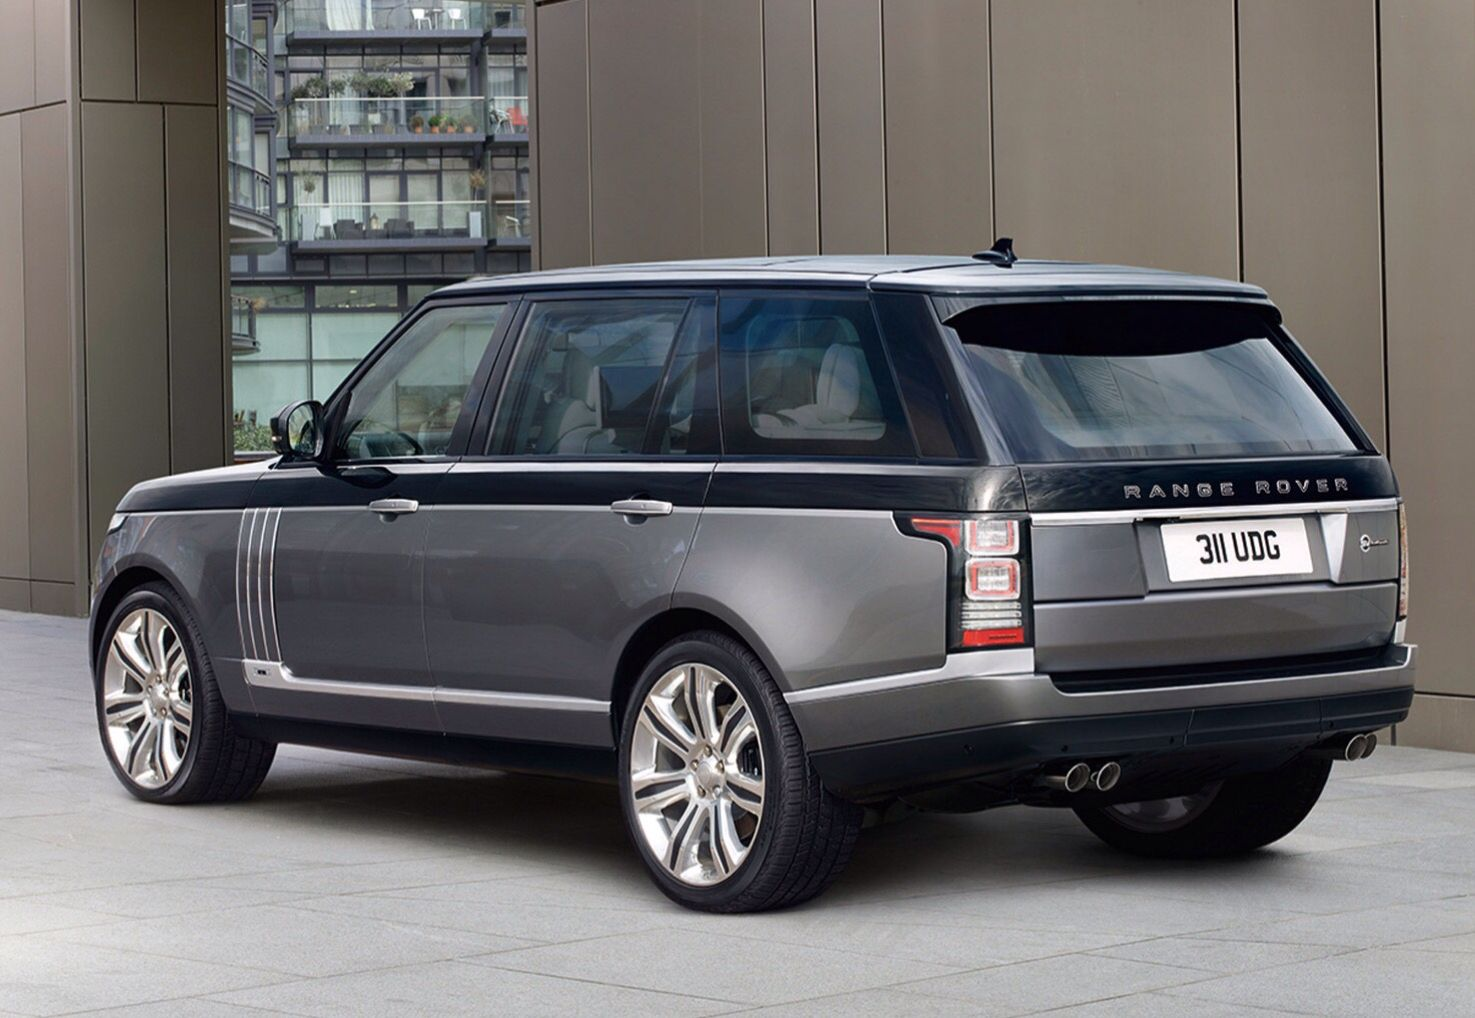 2016 Range Rover SV Autobiography You get a post code